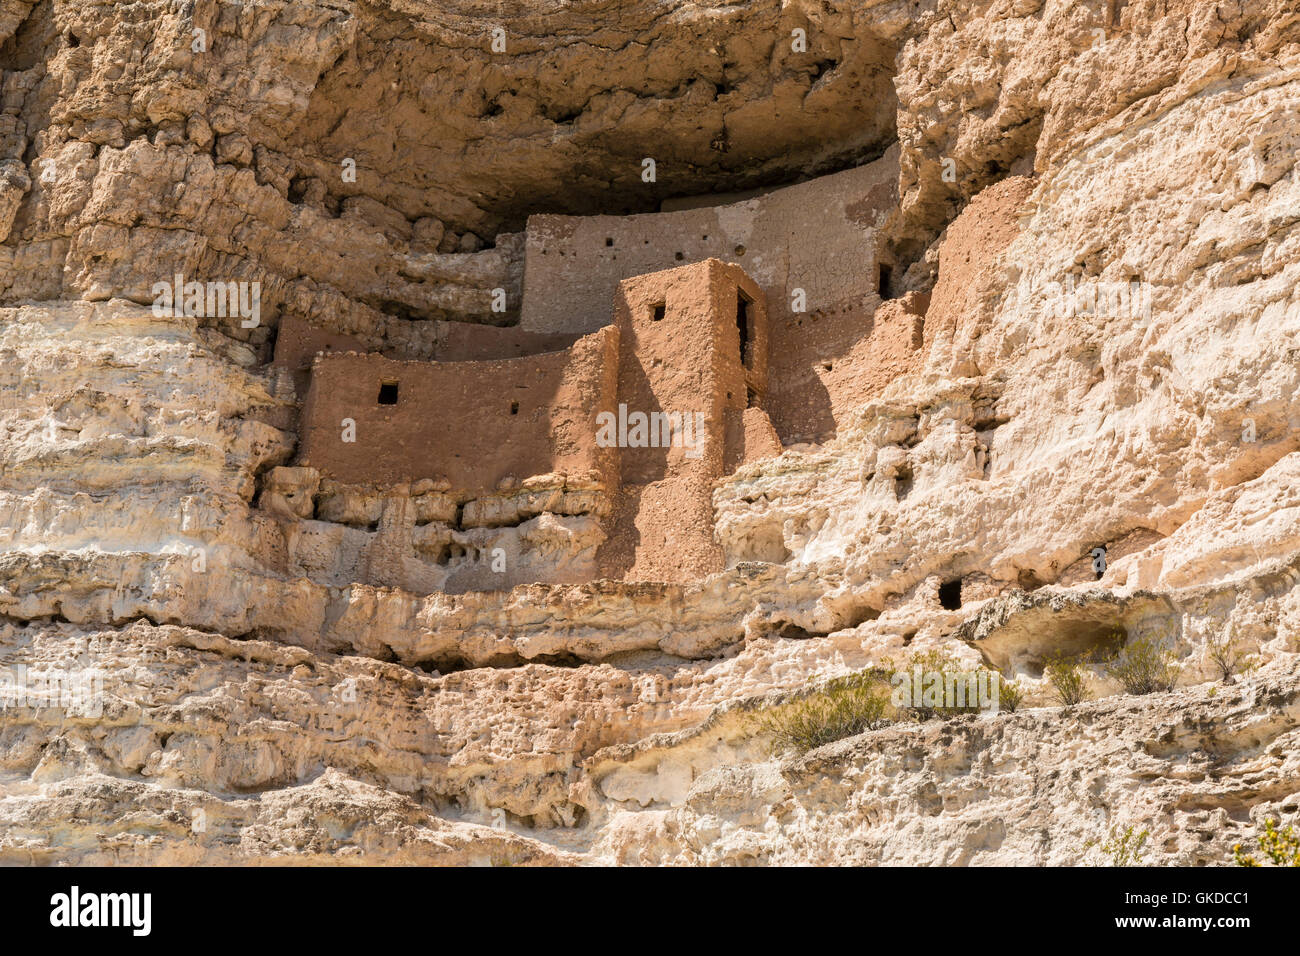 Closeup view of the Native American cliff dwellings in Montezuma Castle National Monument, Arizona - Stock Image